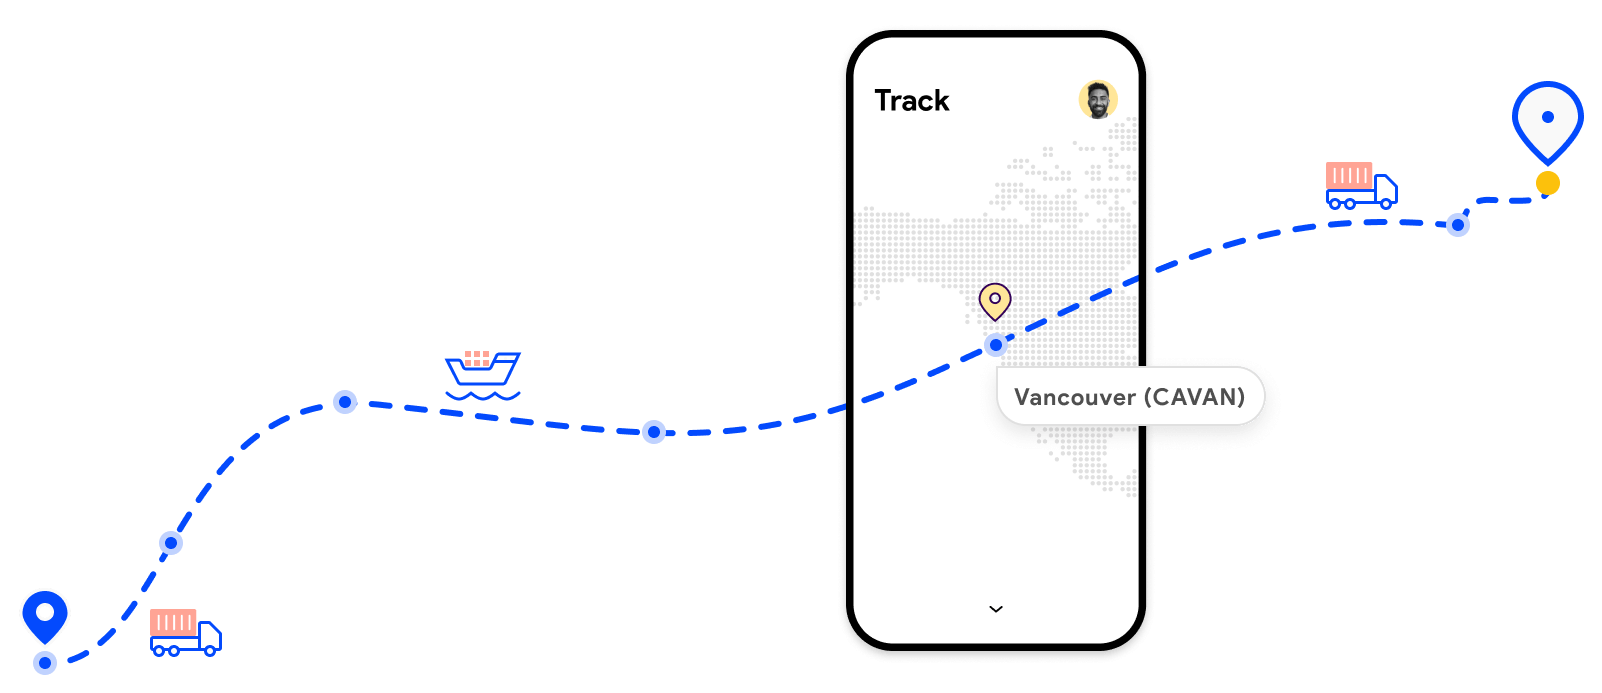 Track all the milestones from pickup, transit and till delivery